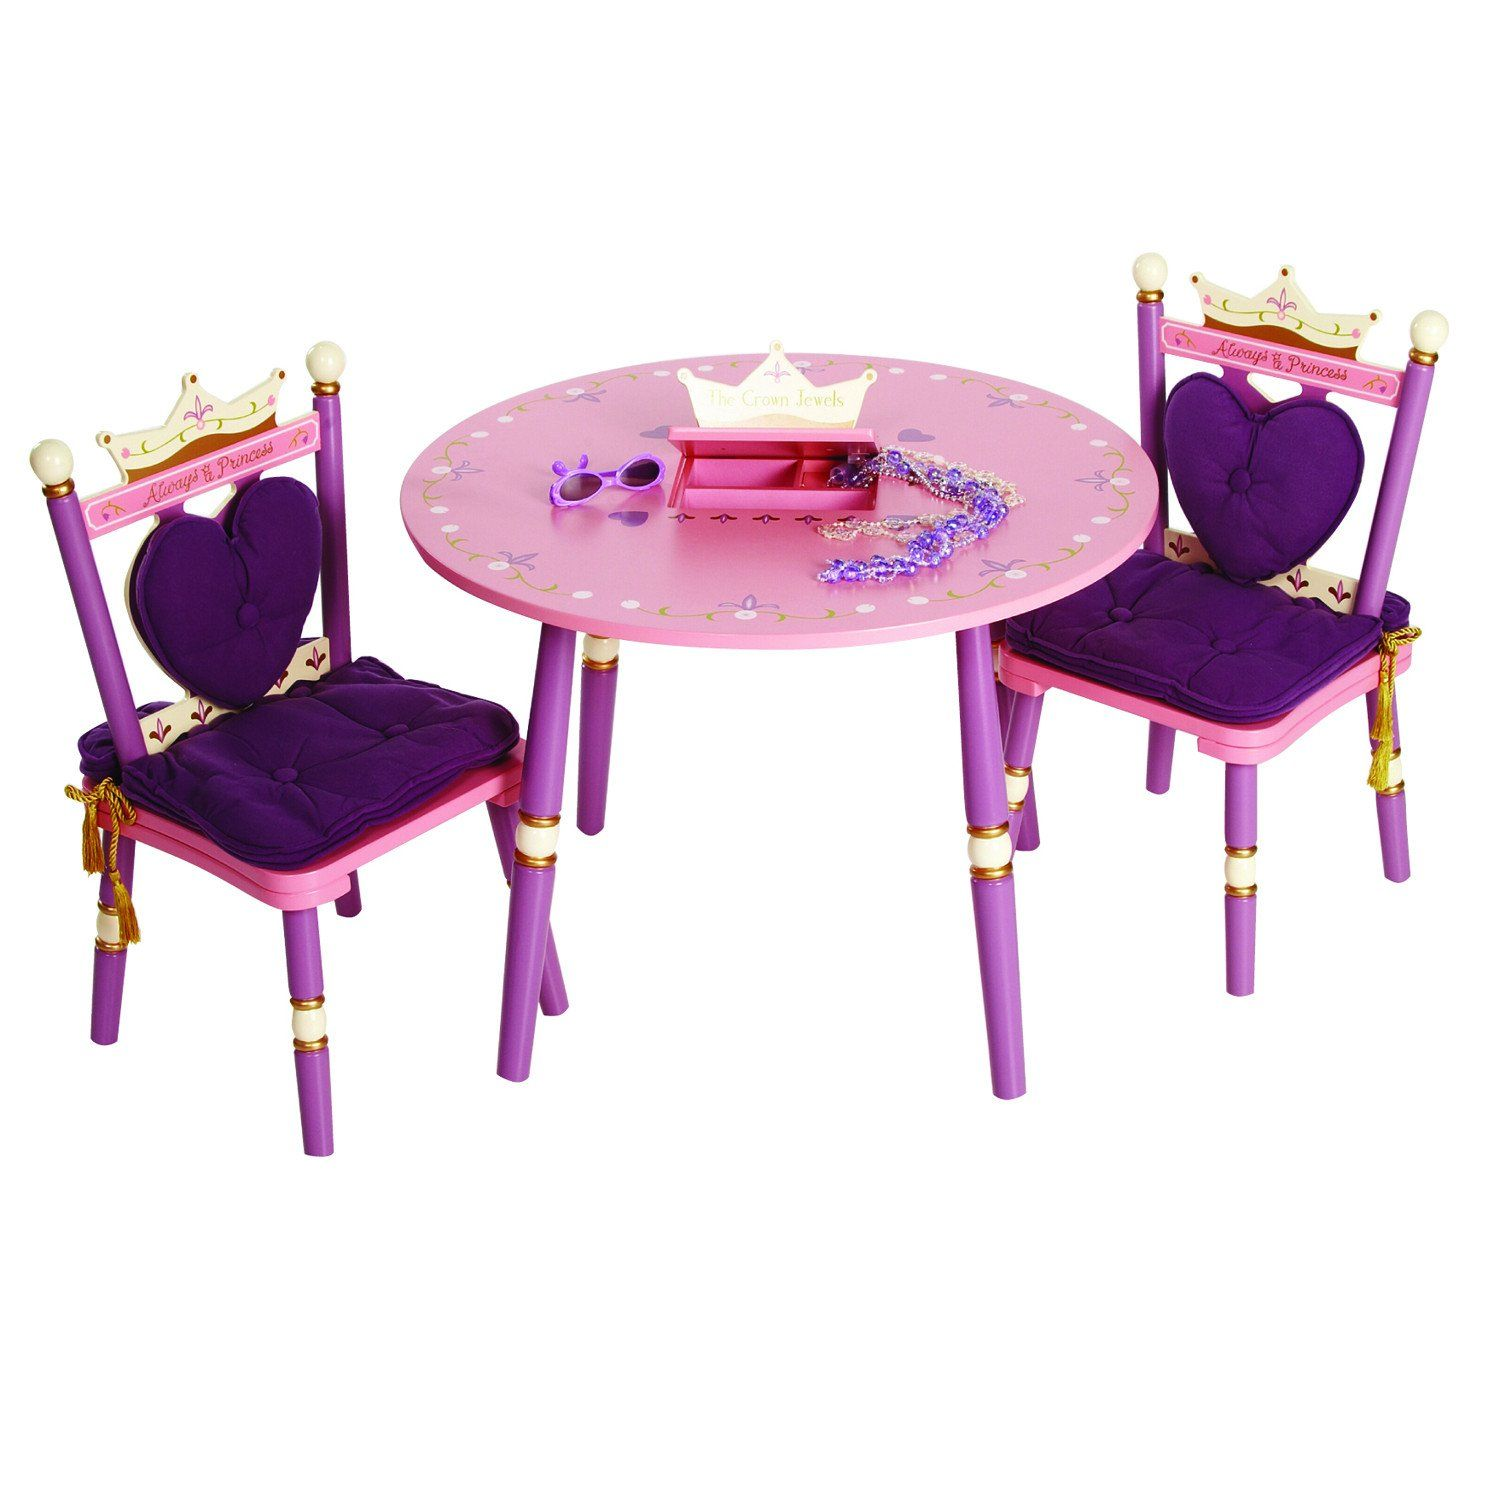 Levels Of Discovery Princess Table 2 Chair Set Lod20008s Wooden Table And Chairs Table And Chairs Chair Set